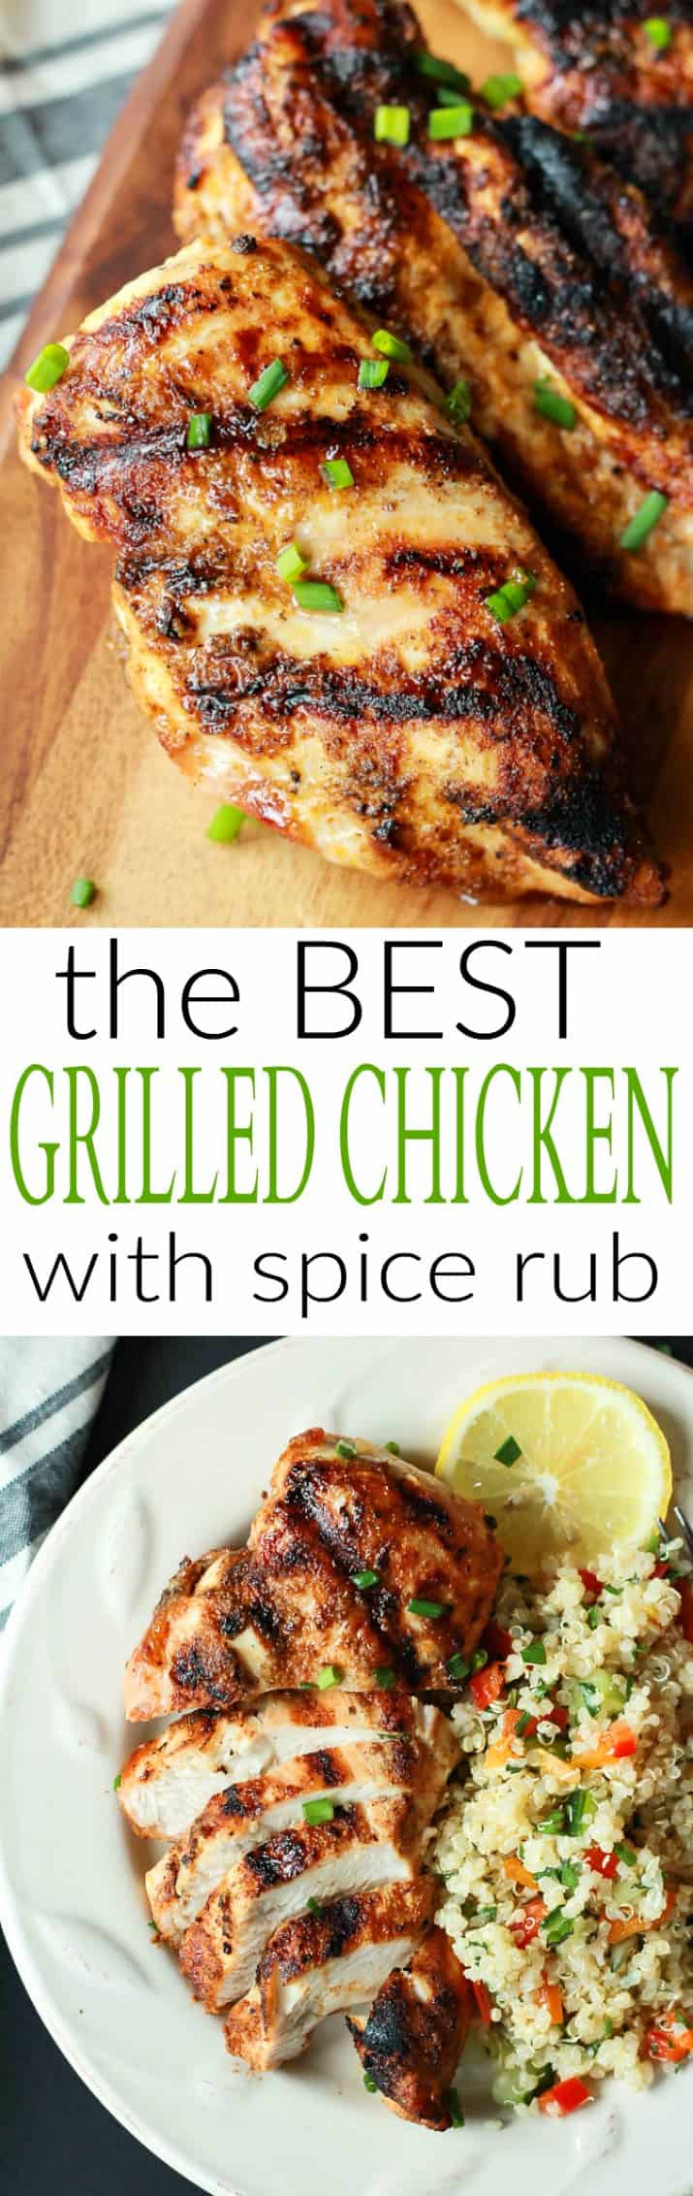 The BEST Grilled Chicken Recipe with Spice Rub | Easy ..